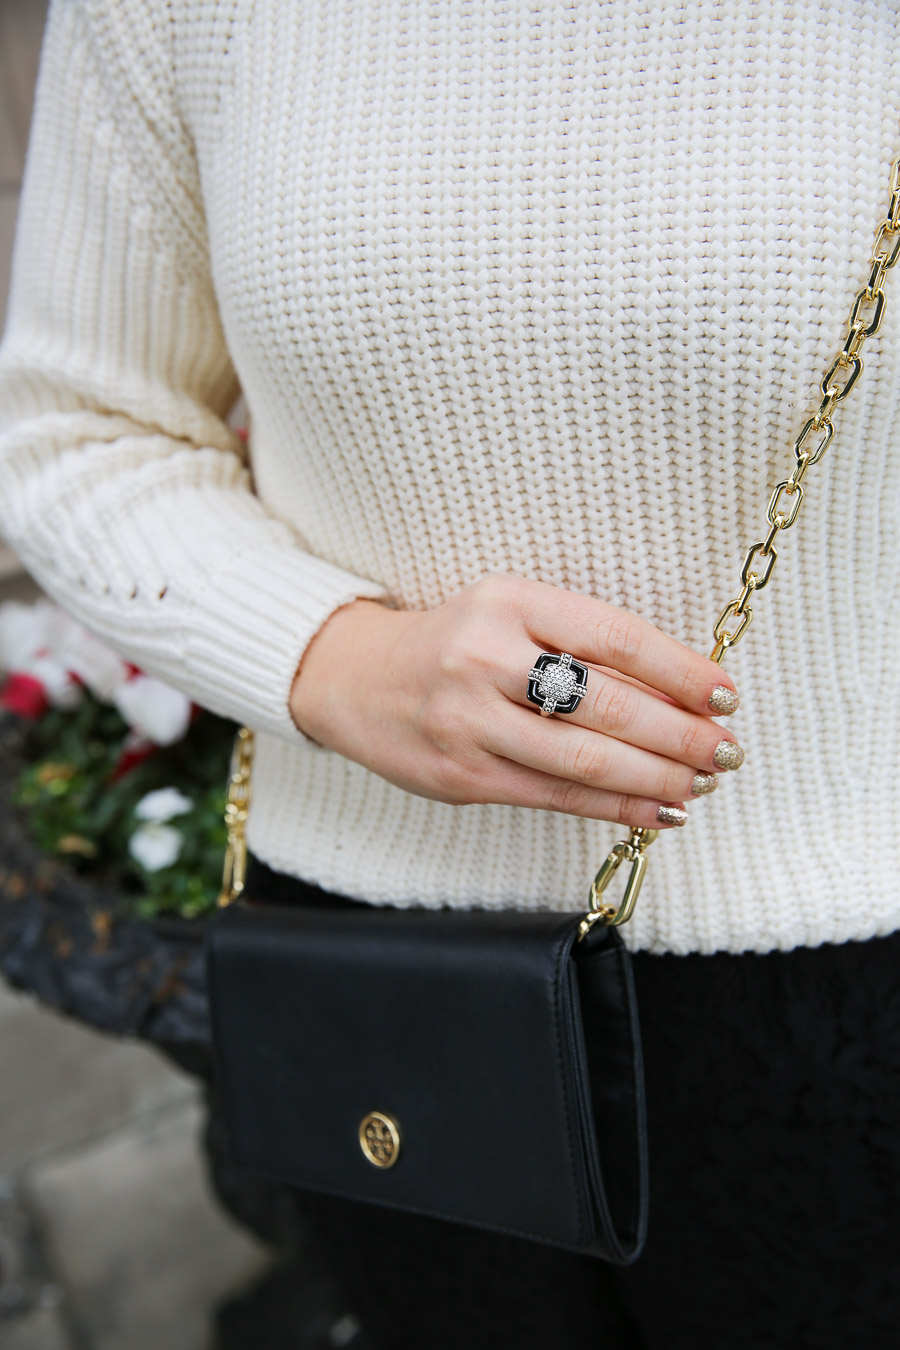 Christmas Party Attire with Pants. LAGOS Black Caviar Ring + Tory Burch Crossbody